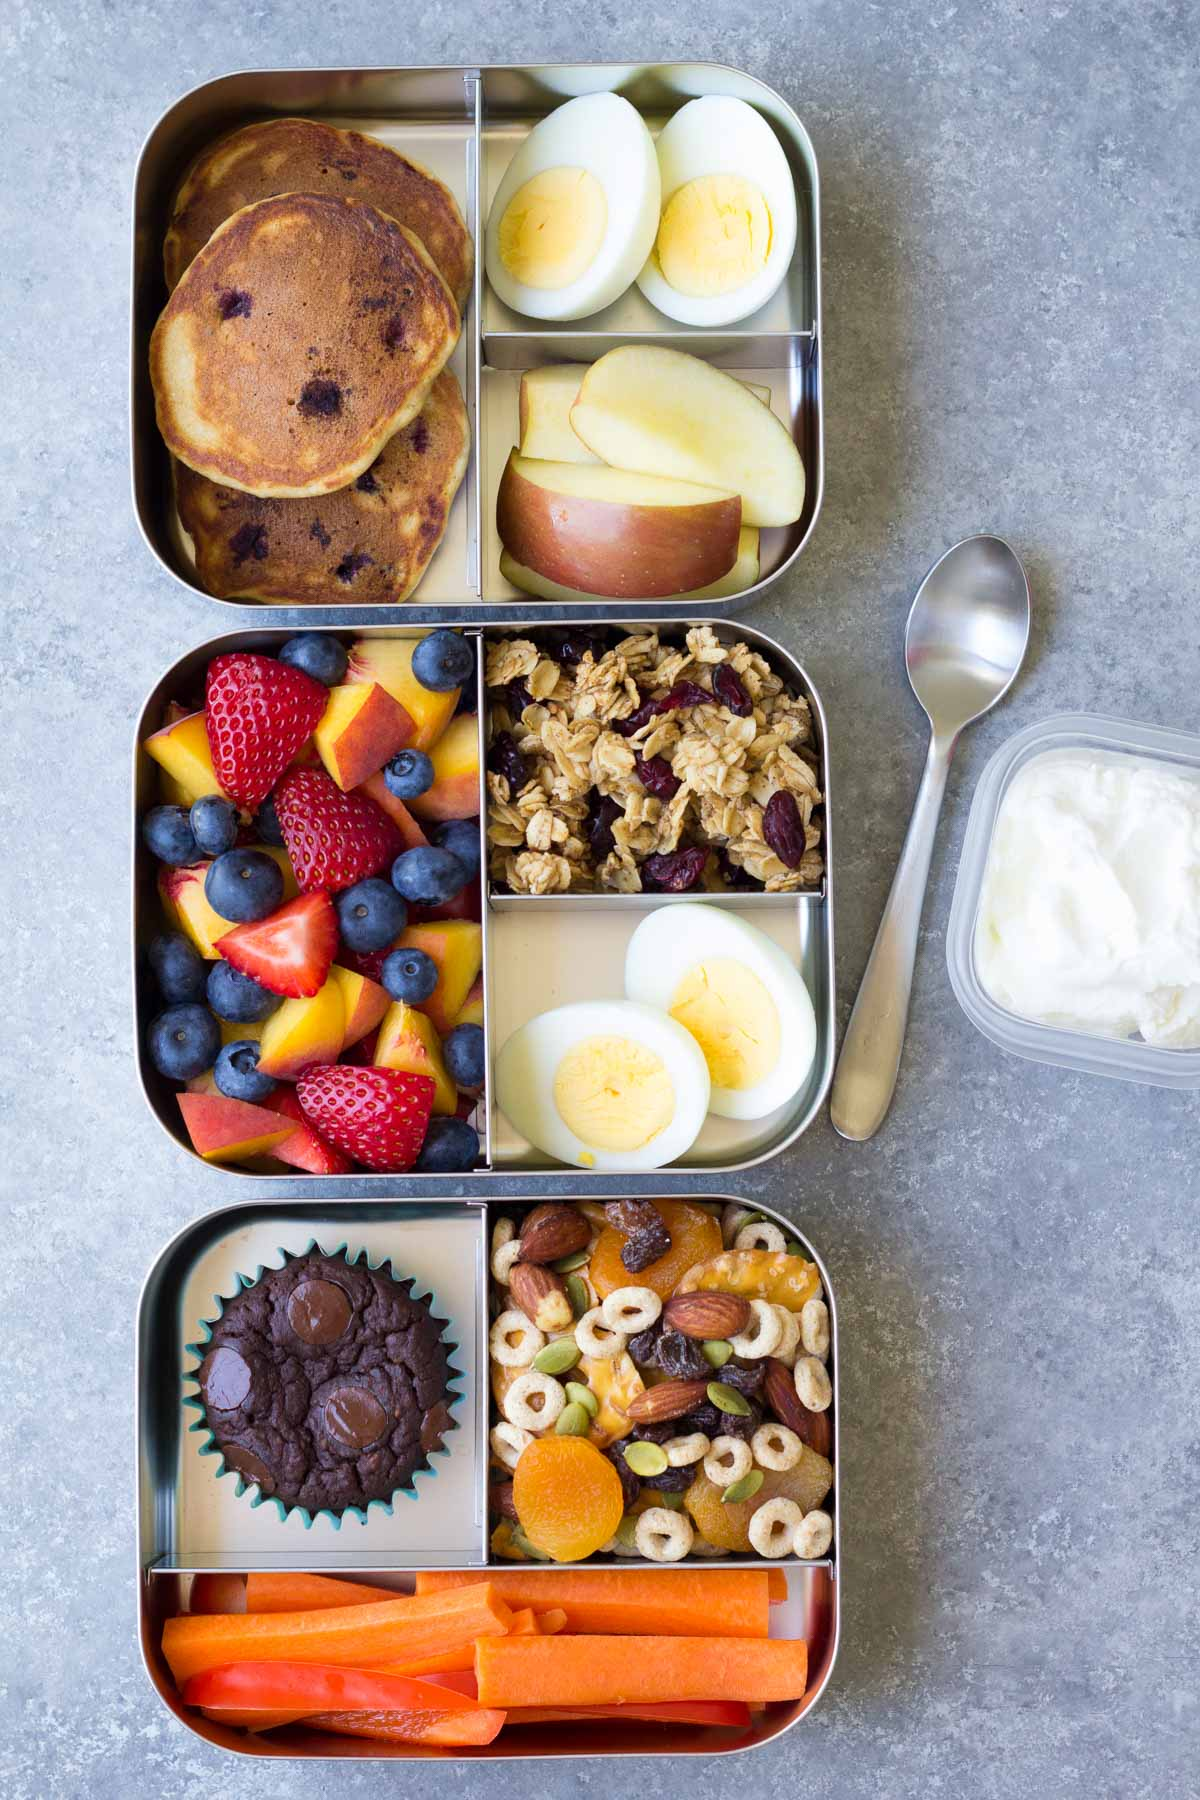 Who says bento boxes are just for kids? This healthy bento-style lunch—loaded with clean, satisfying foods—is perfect to pack for work. Pack snap peas, blueberries, apple, cheese, hummus and crackers in a divided bento-style lunch box or in separate containers with lids. To make ahead Total Time: 10 mins.